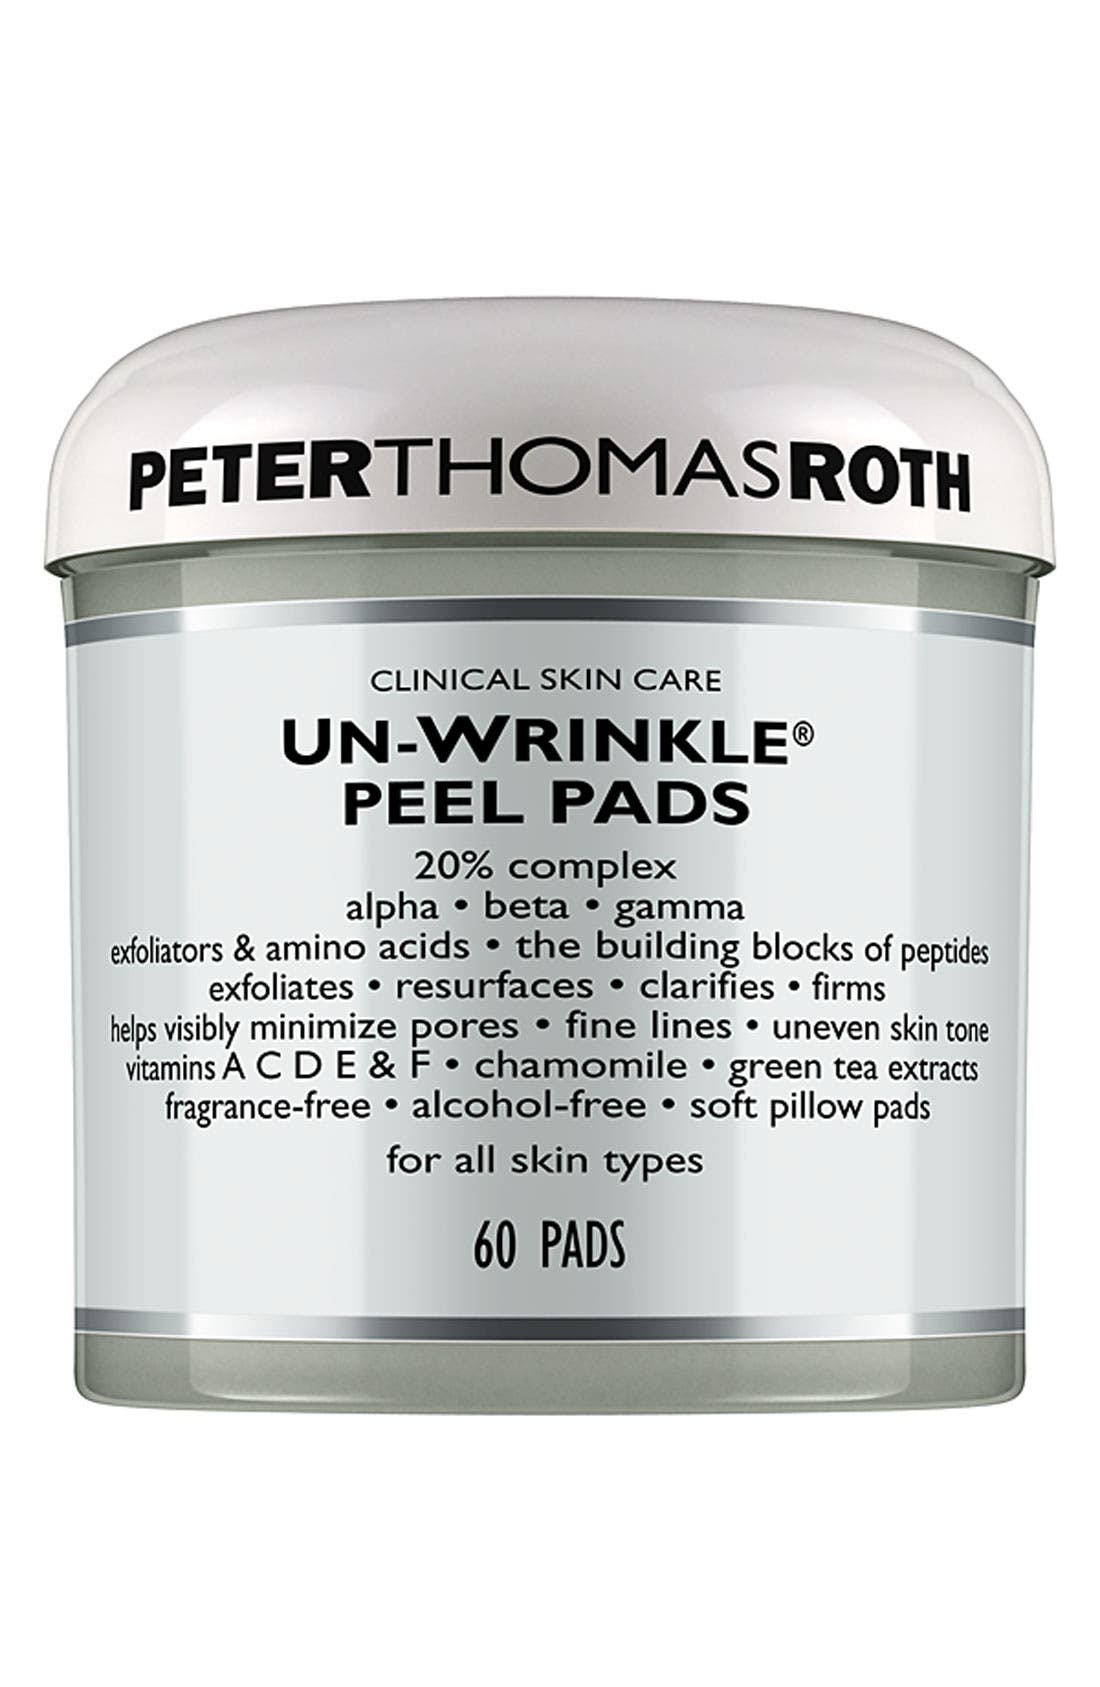 Peter Thomas Roth Un-Wrinkle® Peel Pads